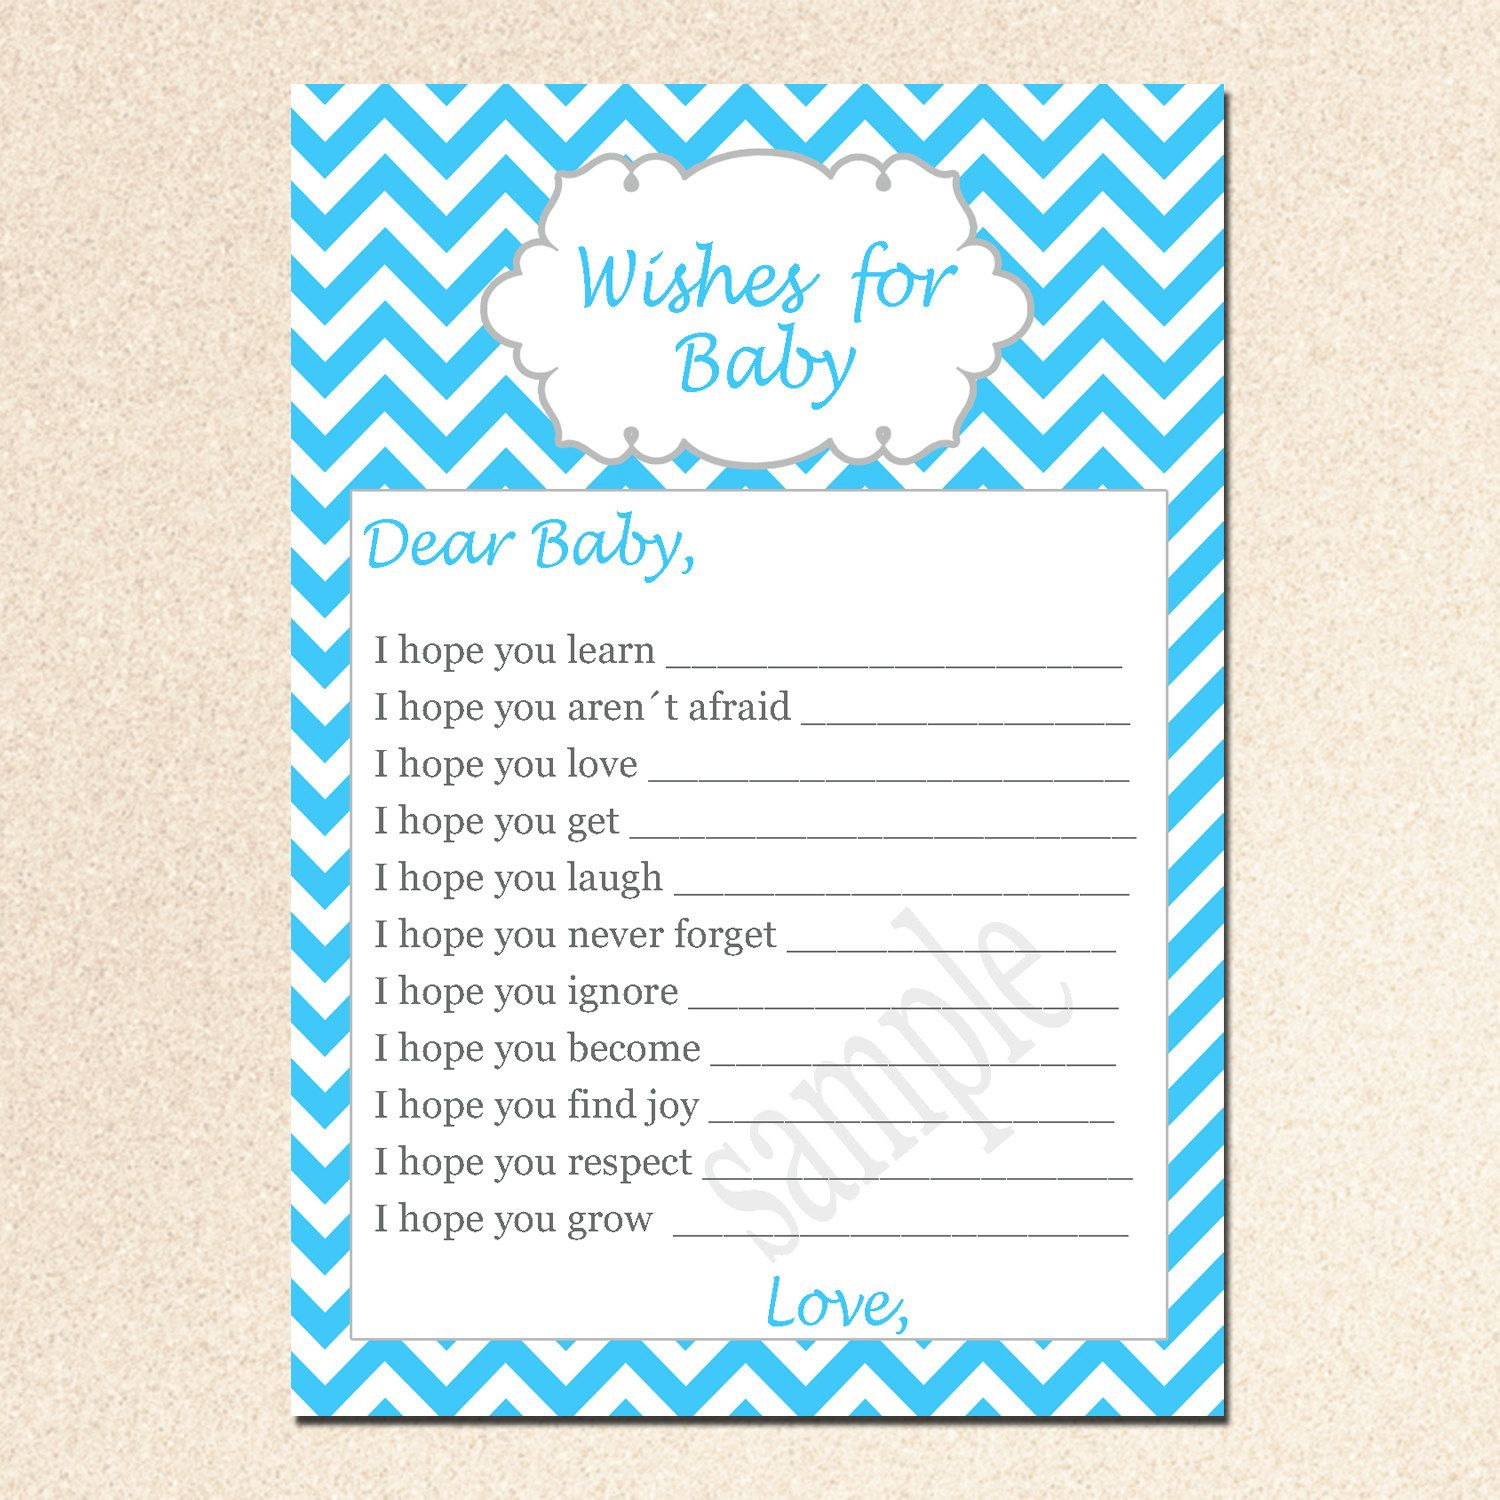 wishes+for+baby | Printable Chevron Wishes for Baby Card - Baby ...